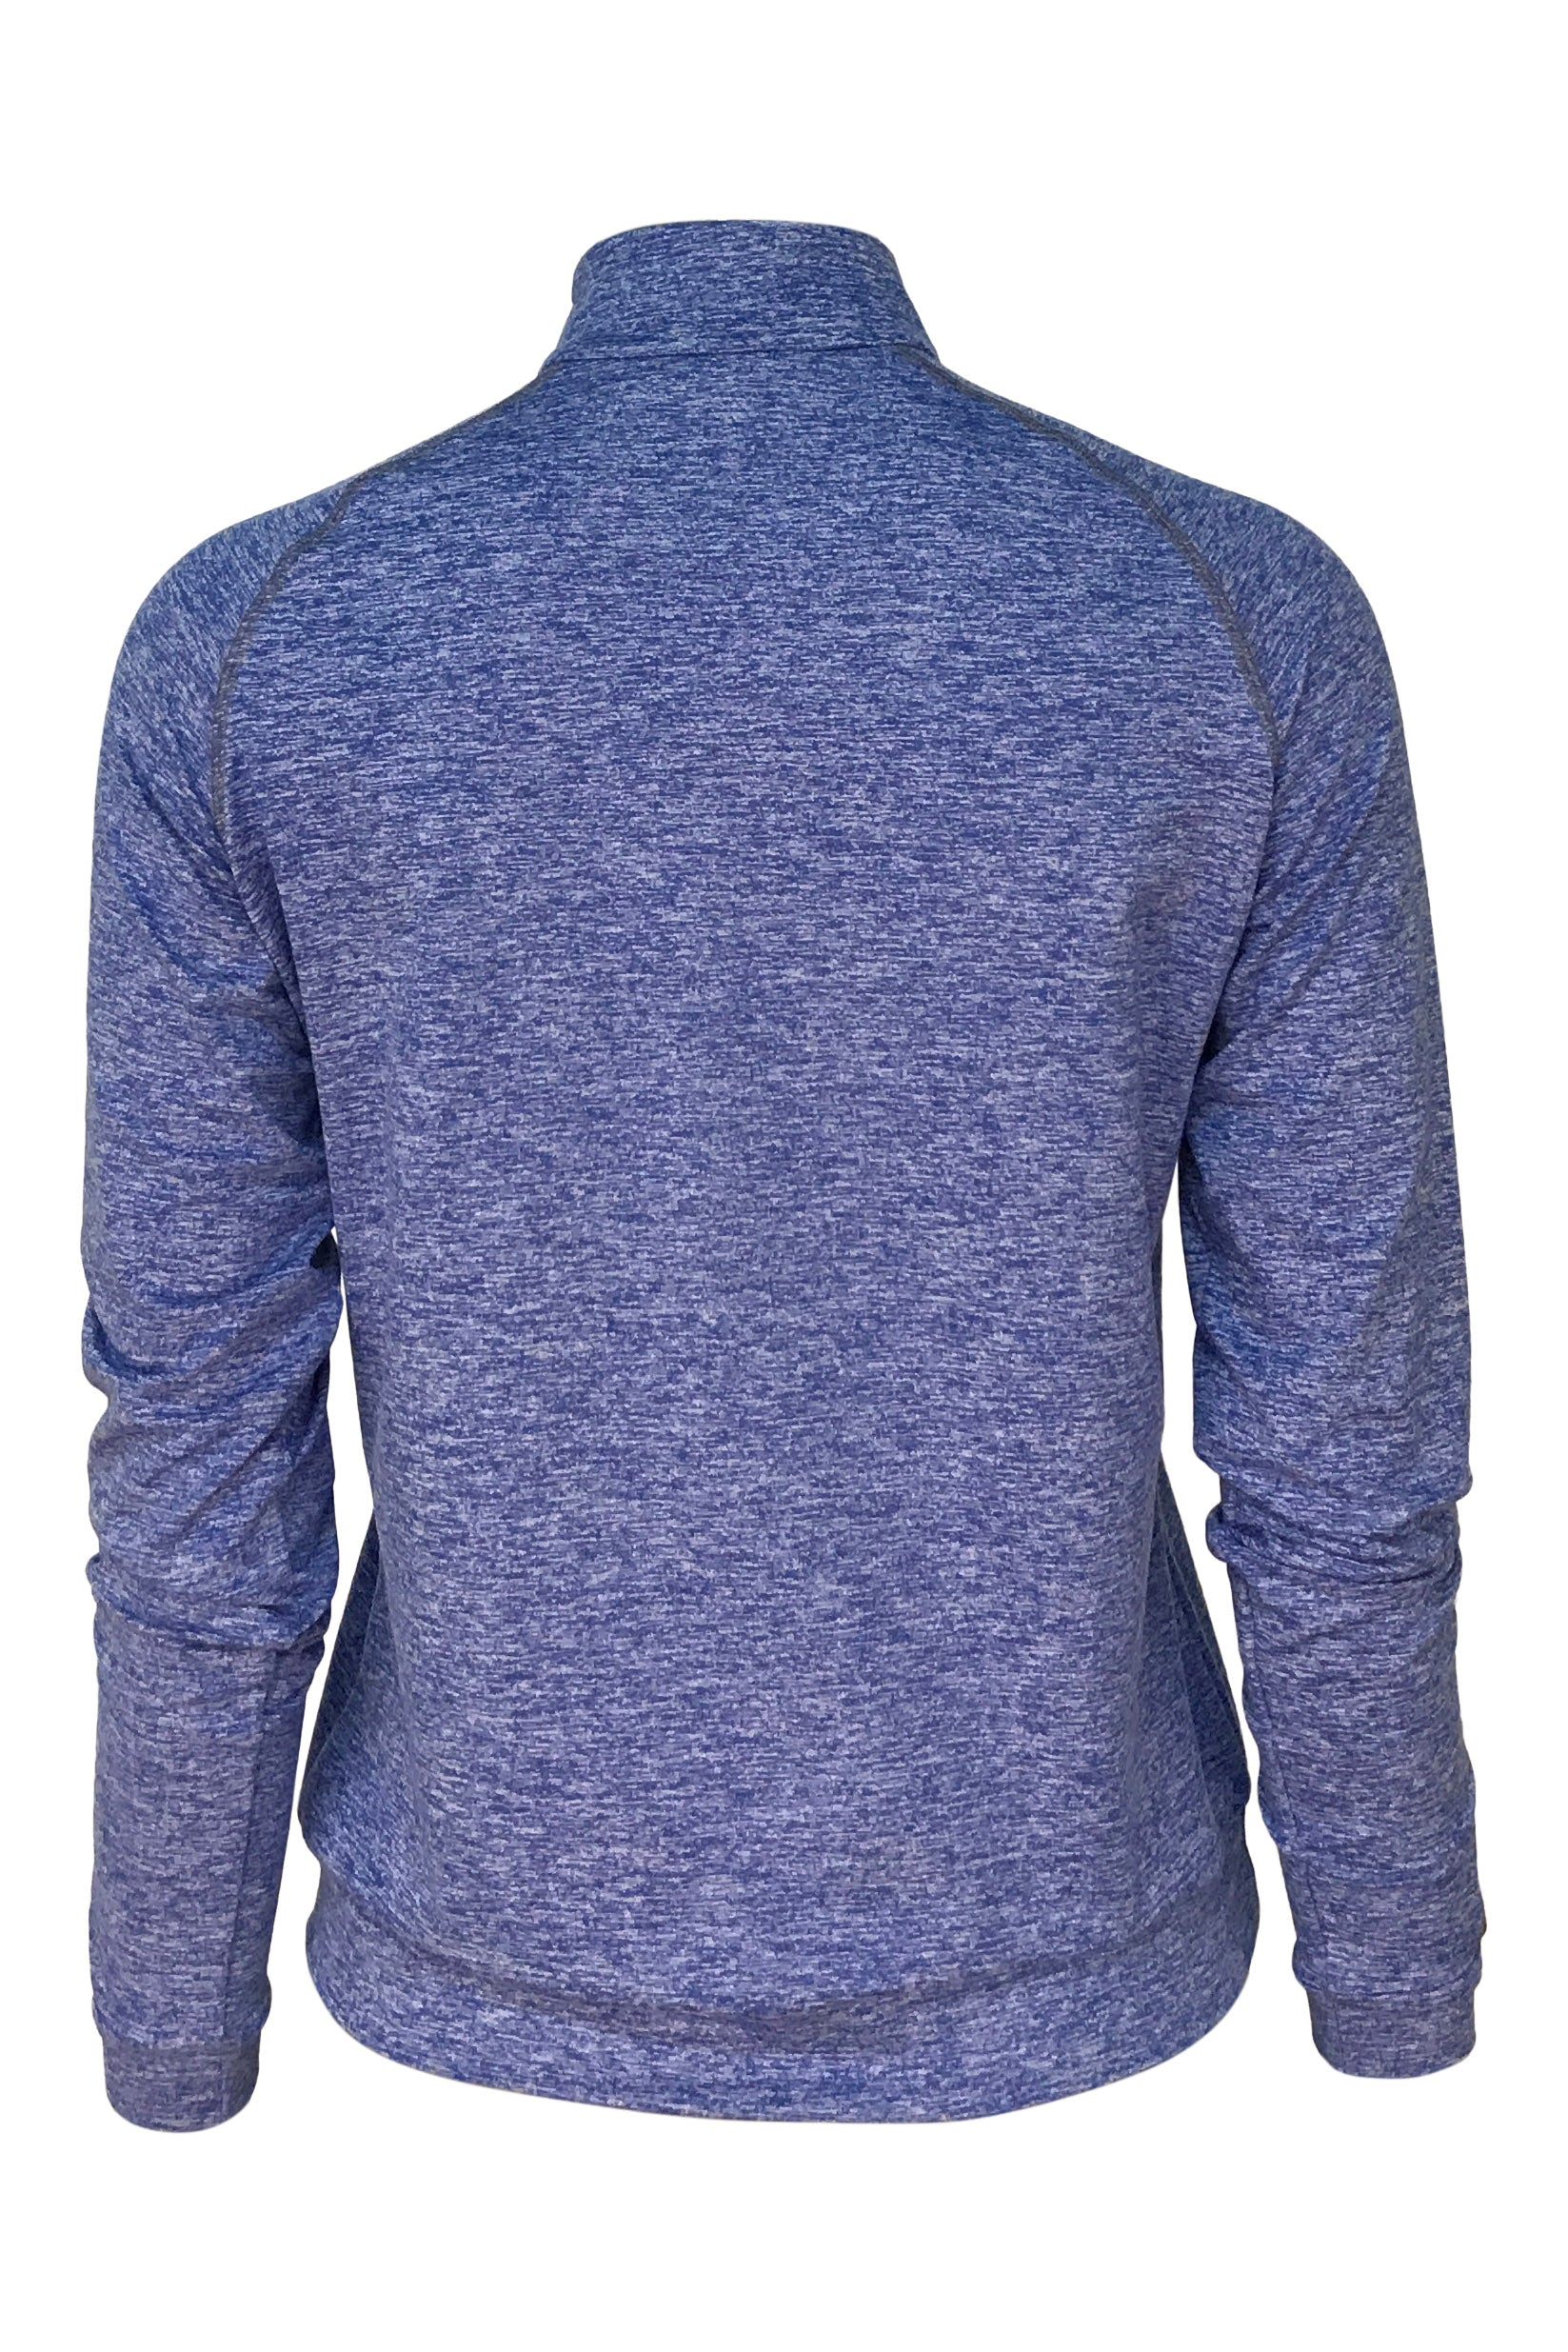 FILLMORE QUARTER ZIP - HEATHER BLUE